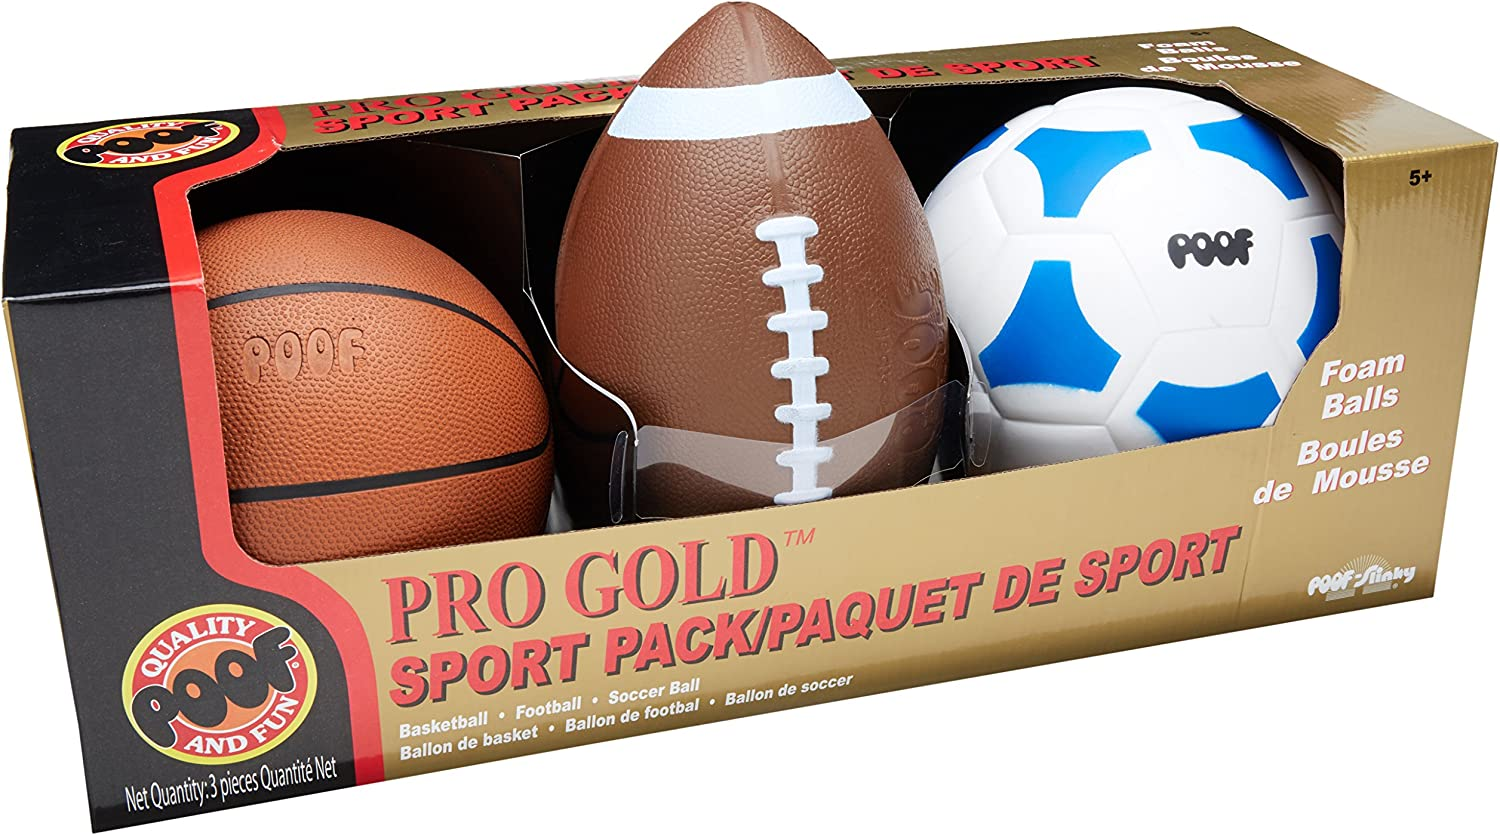 POOF Pro gold Foam 9.5Inch Football, 7Inch Basketball and 7.5Inch Soccer Ball 3Ball Sport Pack in Box, Various colors